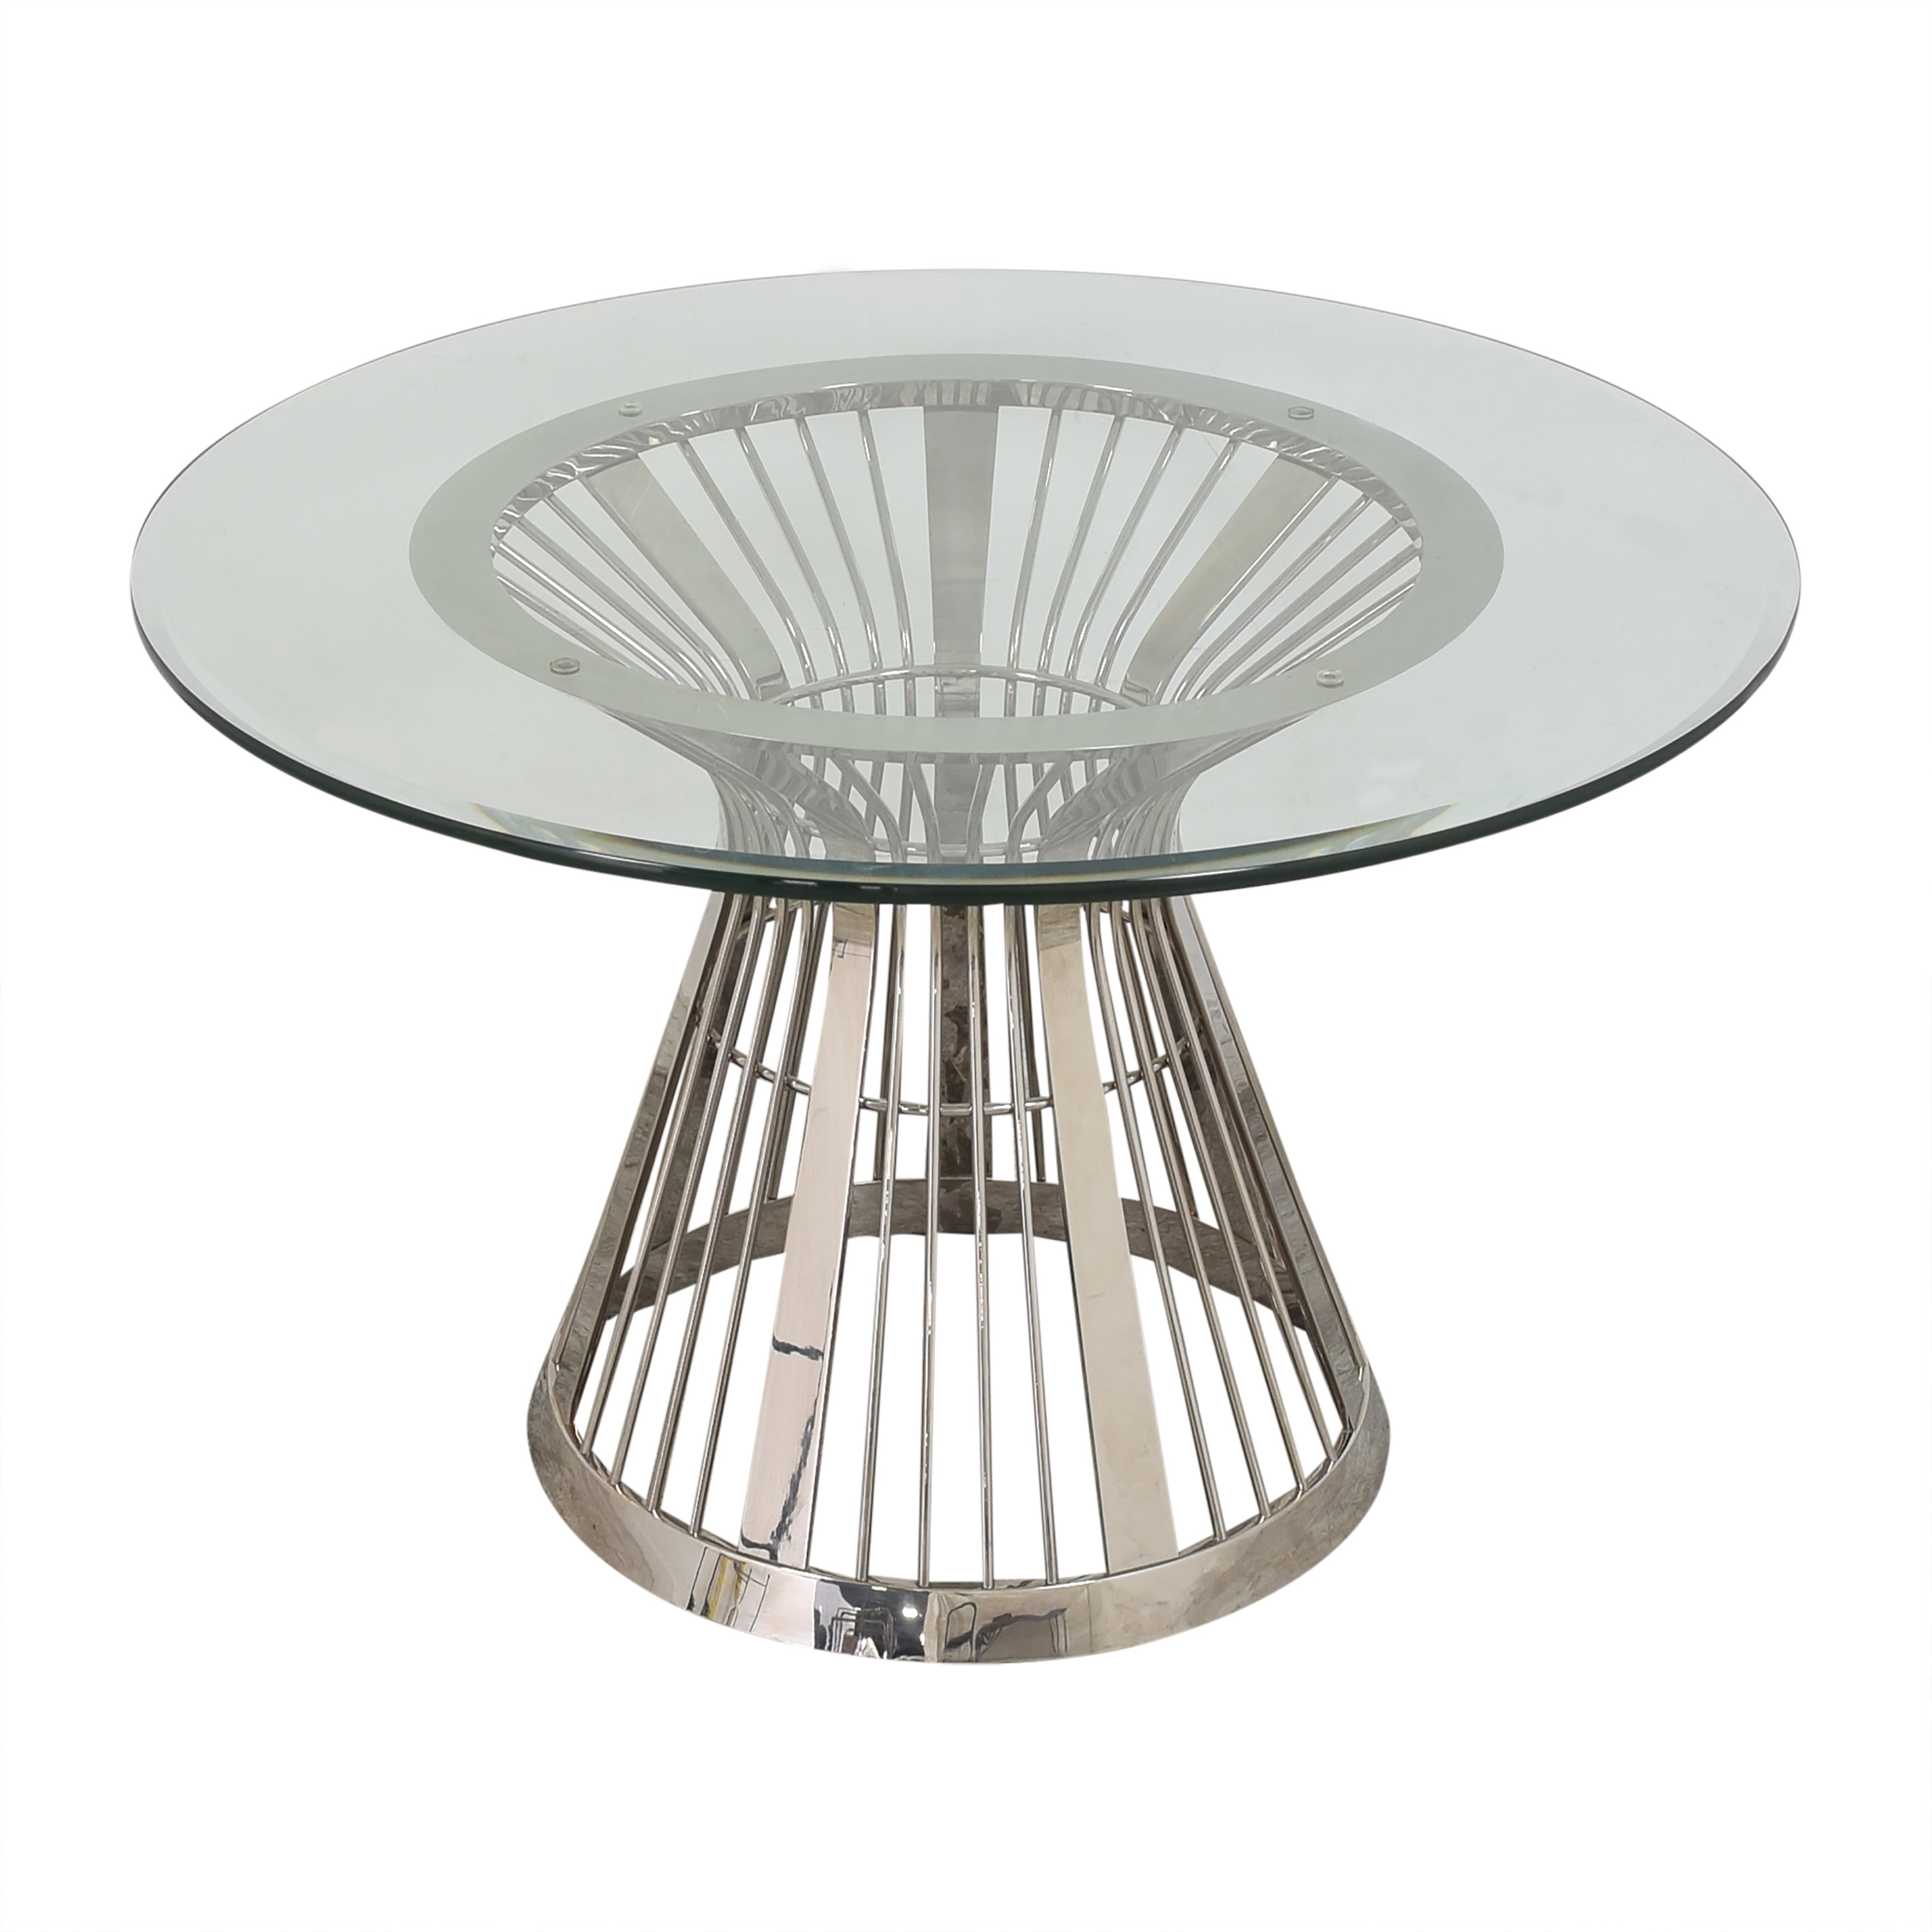 buy Lexington Furniture Lexington Ariana Riviera Round Dining Table online